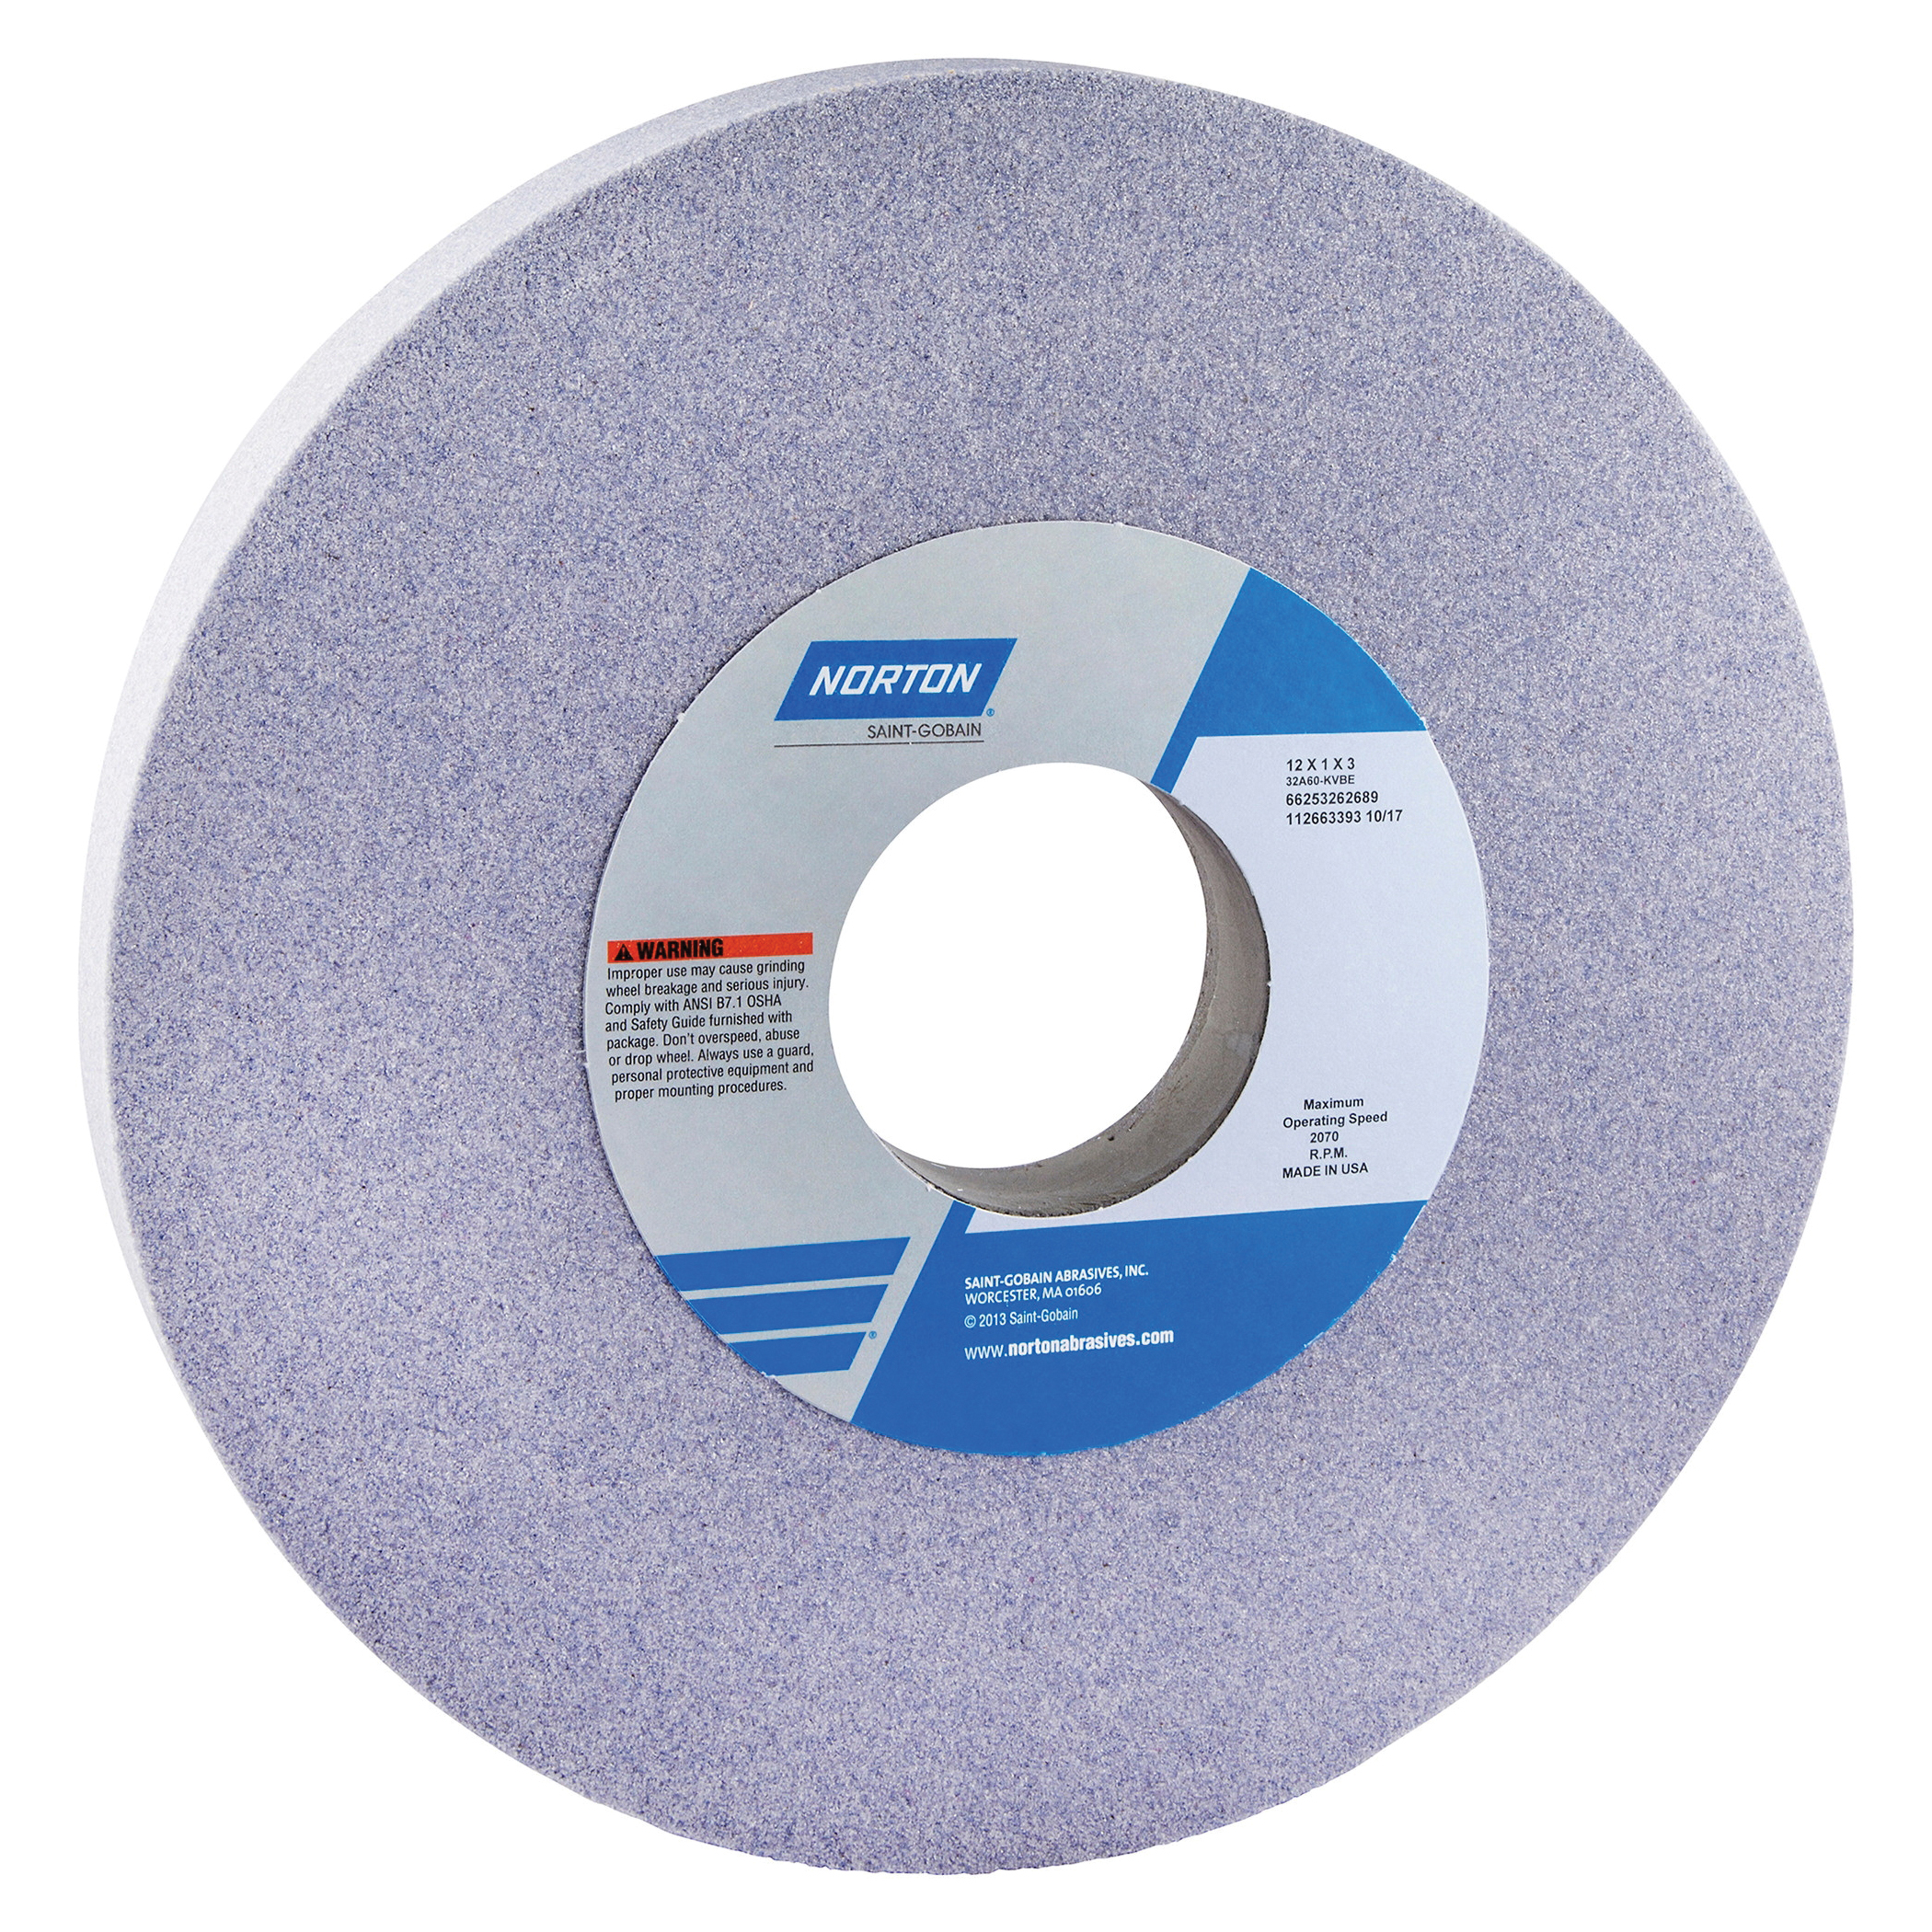 Norton® 66253262580 32A Straight Toolroom Wheel, 12 in Dia x 1 in THK, 3 in Center Hole, 60 Grit, Aluminum Oxide Abrasive